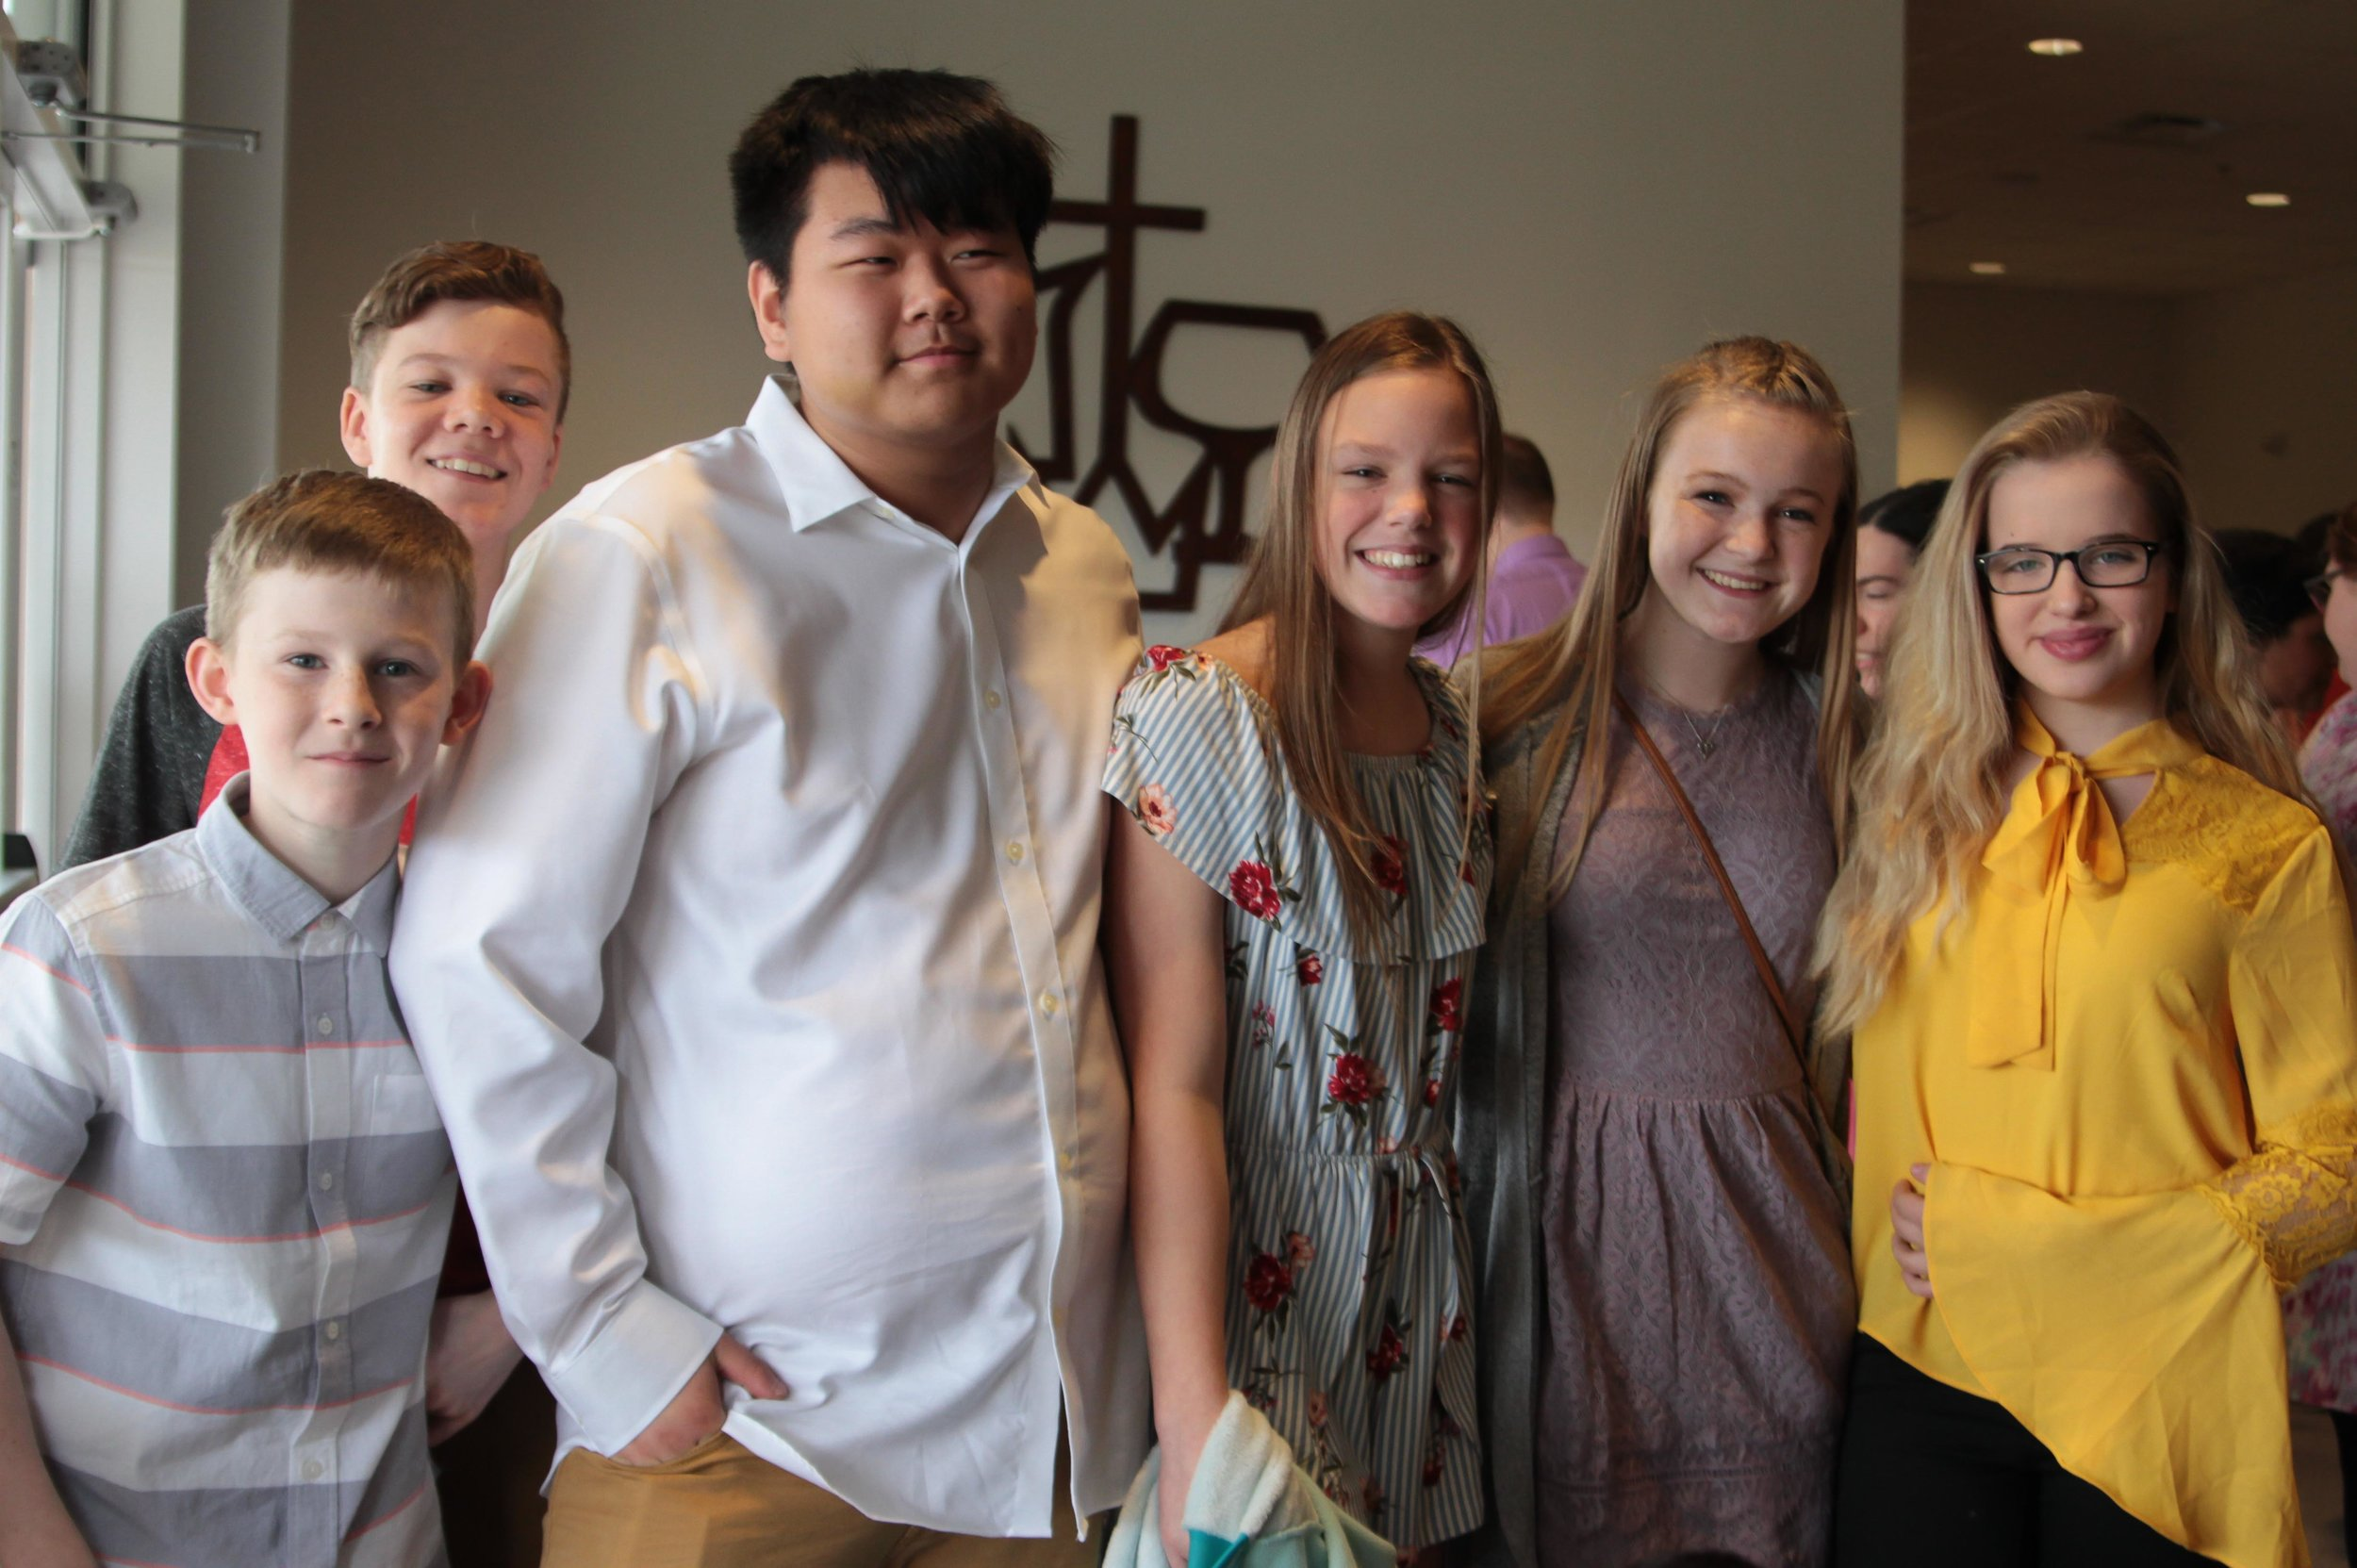 YOUTH - Learn more about Youth Ministry